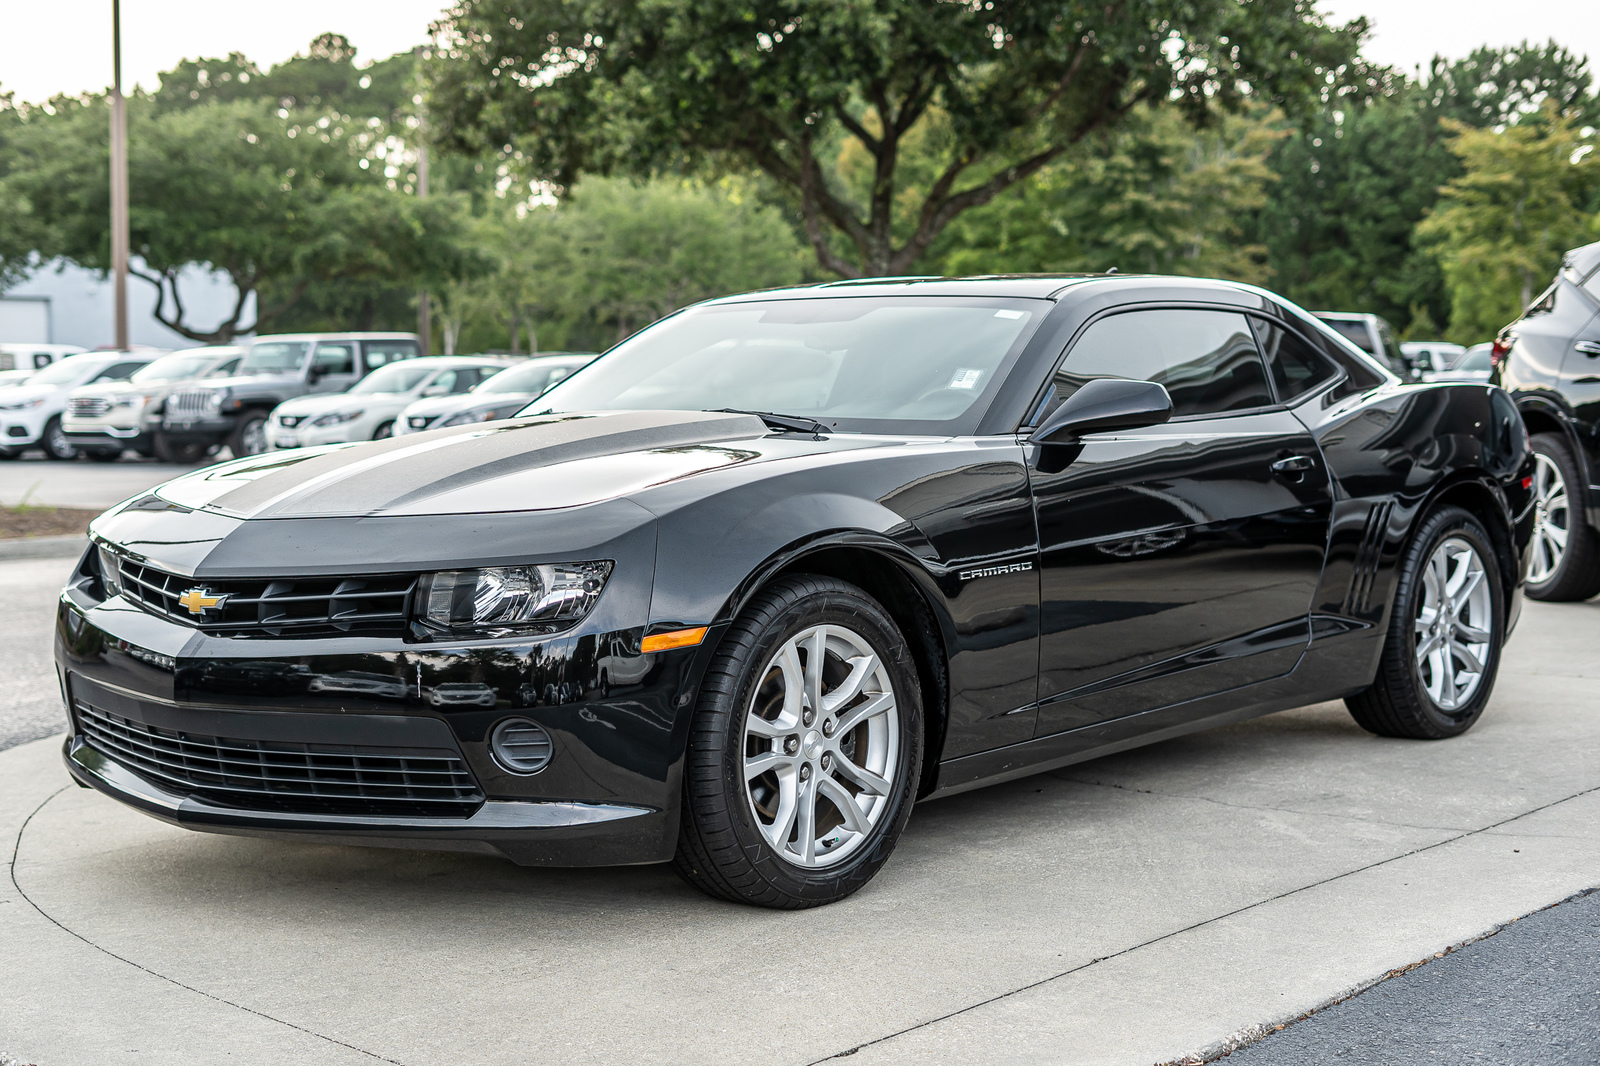 Pre-Owned 2014 Chevrolet Camaro 2dr Cpe LS w/1LS